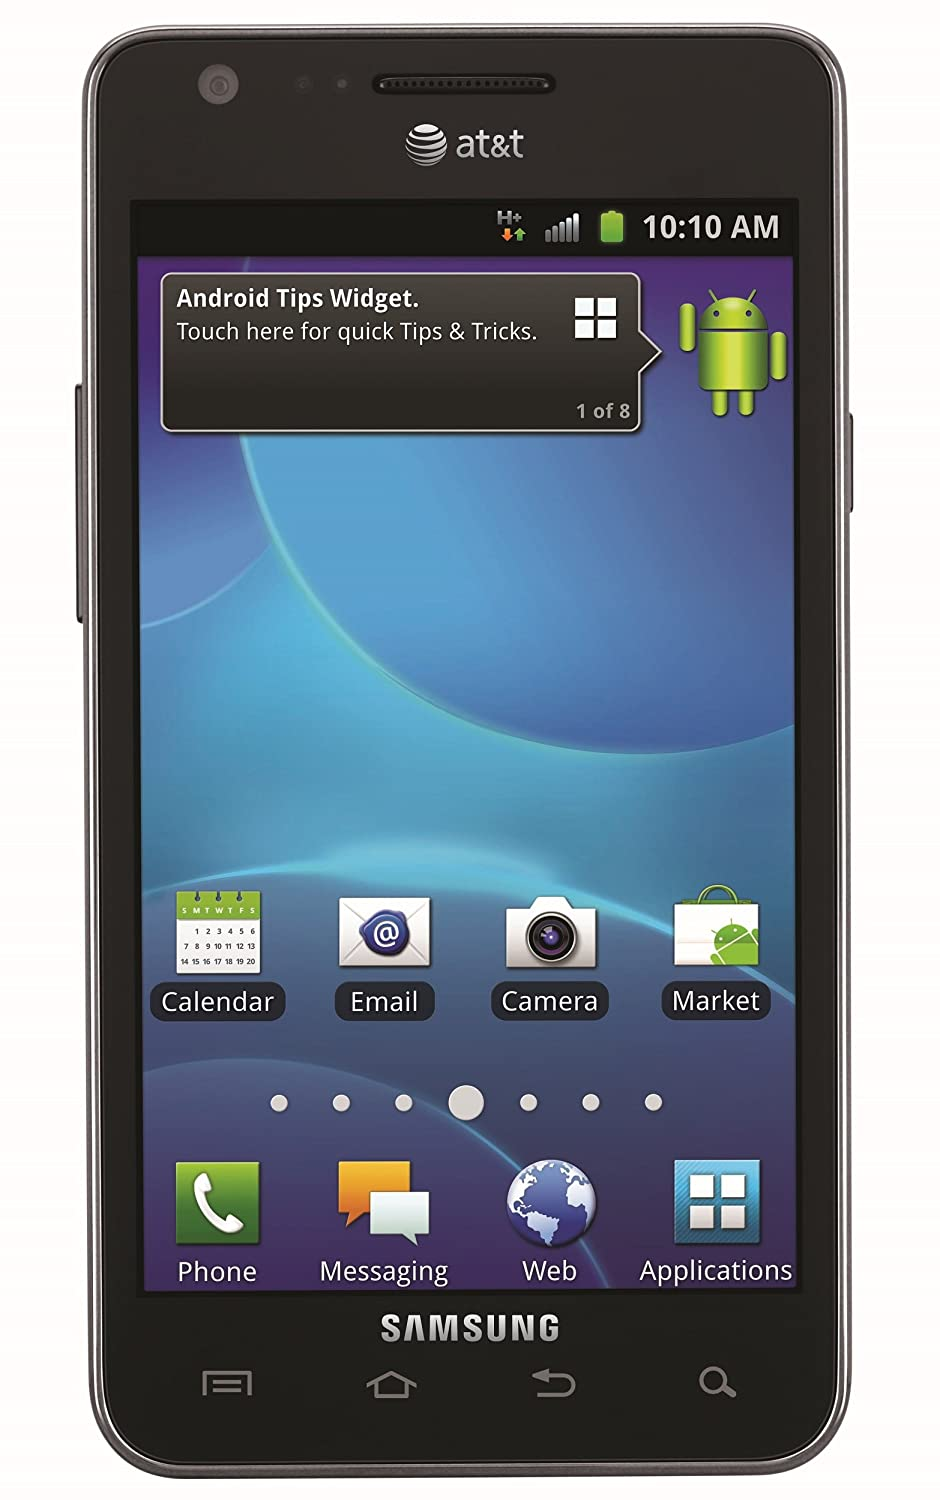 Amazon.com: Samsung Galaxy S2 I777 16GB Unlocked GSM Android Cell Phone -  Black: Cell Phones & Accessories